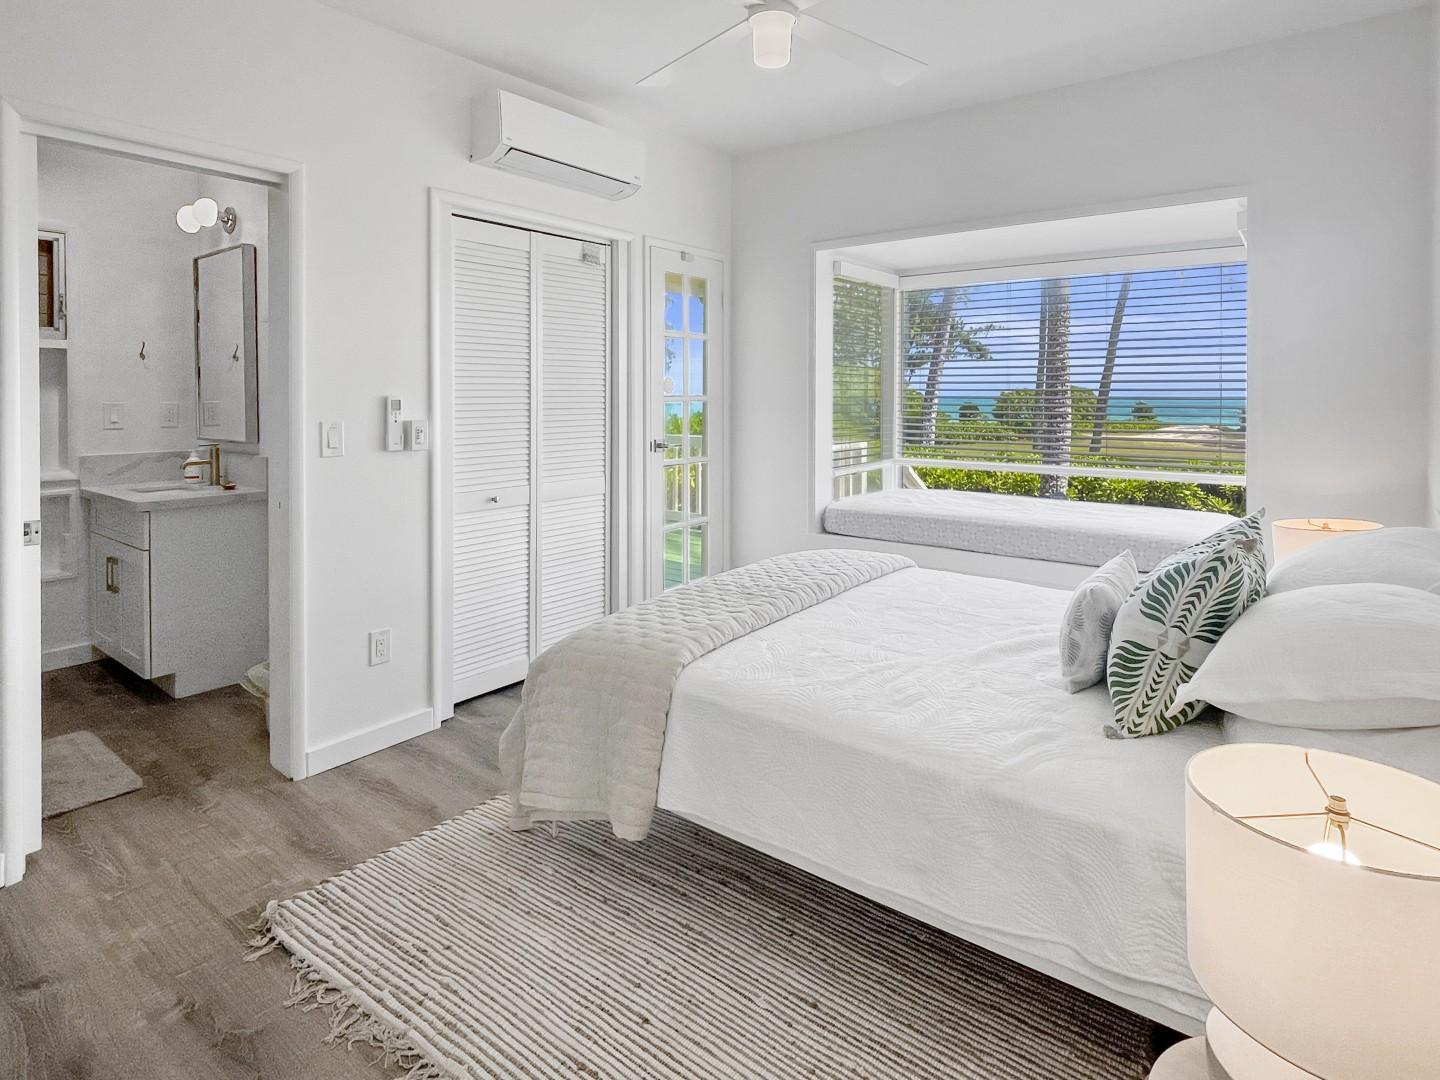 Bedroom 3, King bed with ensuite and private lanai